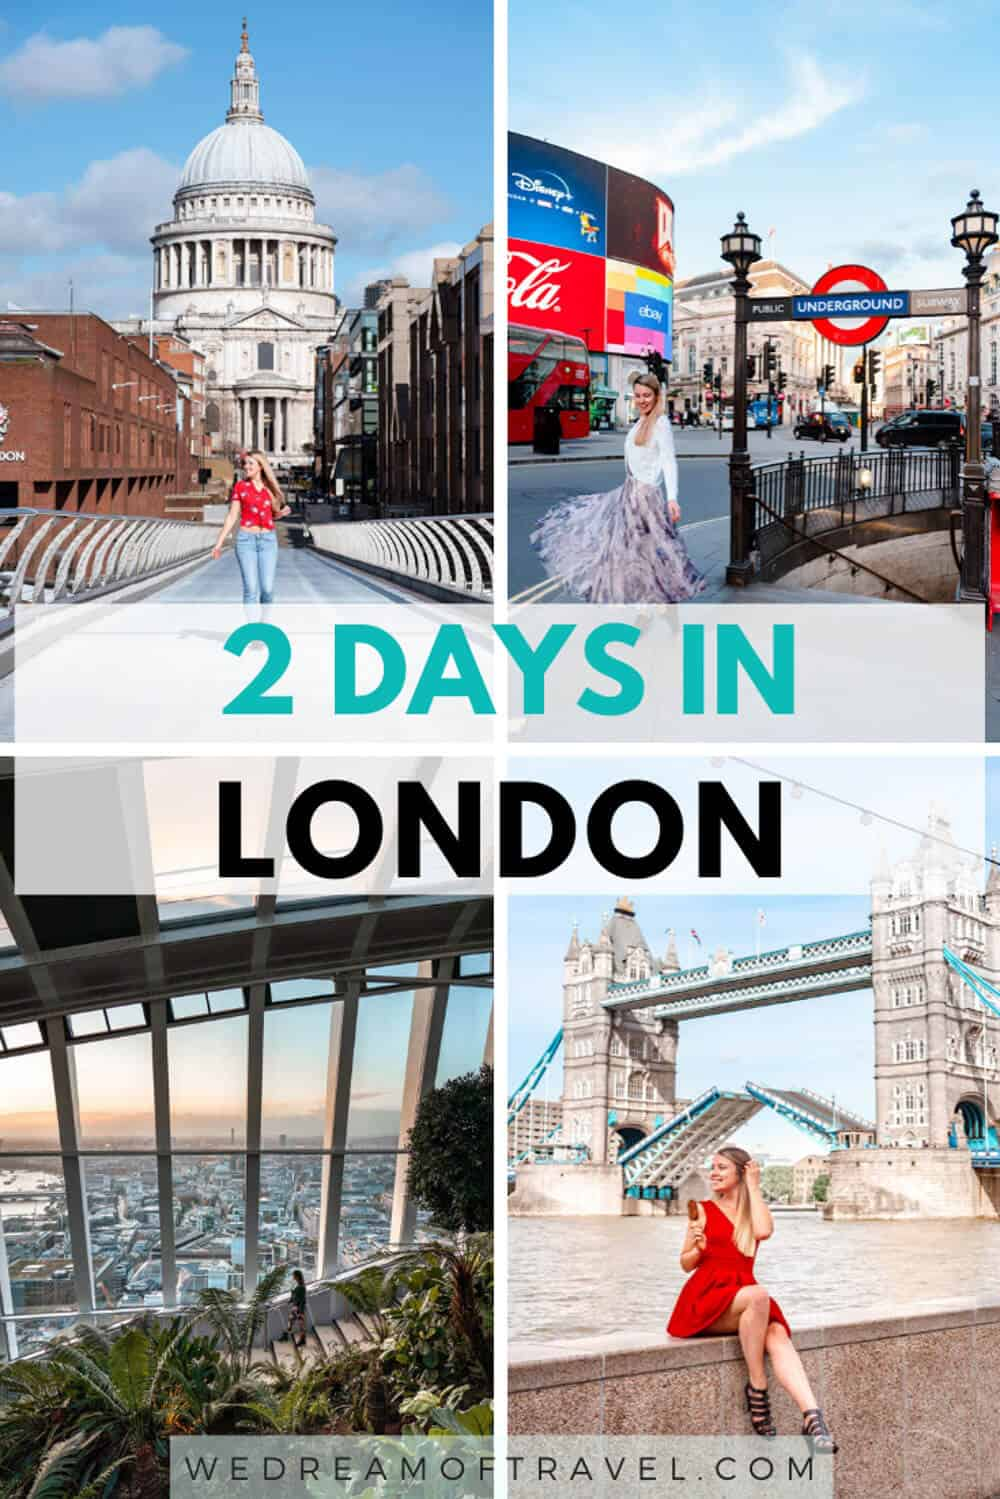 Looking to discover what to see and things to do in London in 2 days?  This guide from a Londoner will help you plan your perfect 2 day itinerary.